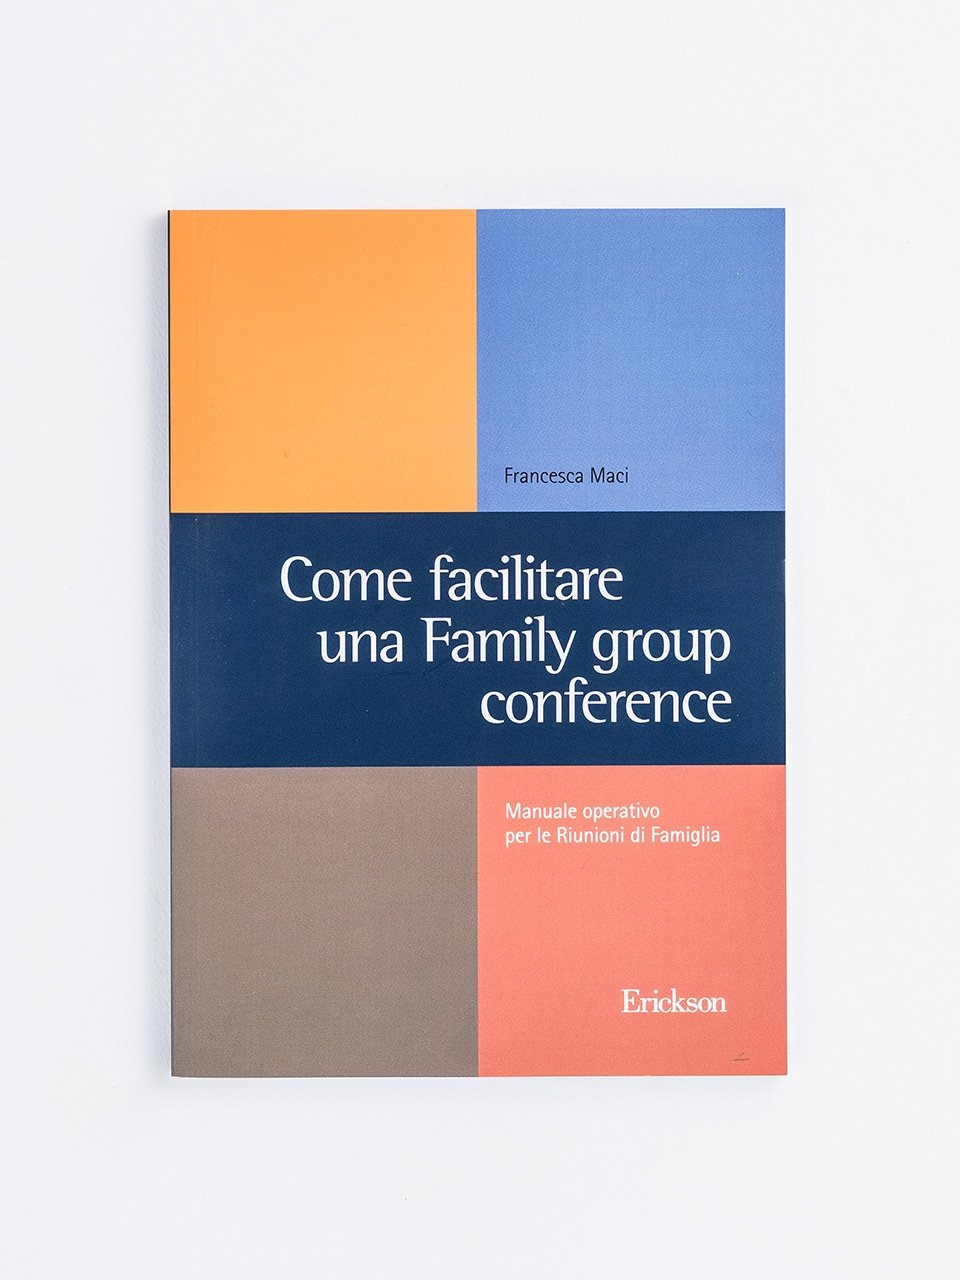 Come facilitare una Family group conference - Leggere facile - Clemente il pesce col salvagente - Libri - Erickson